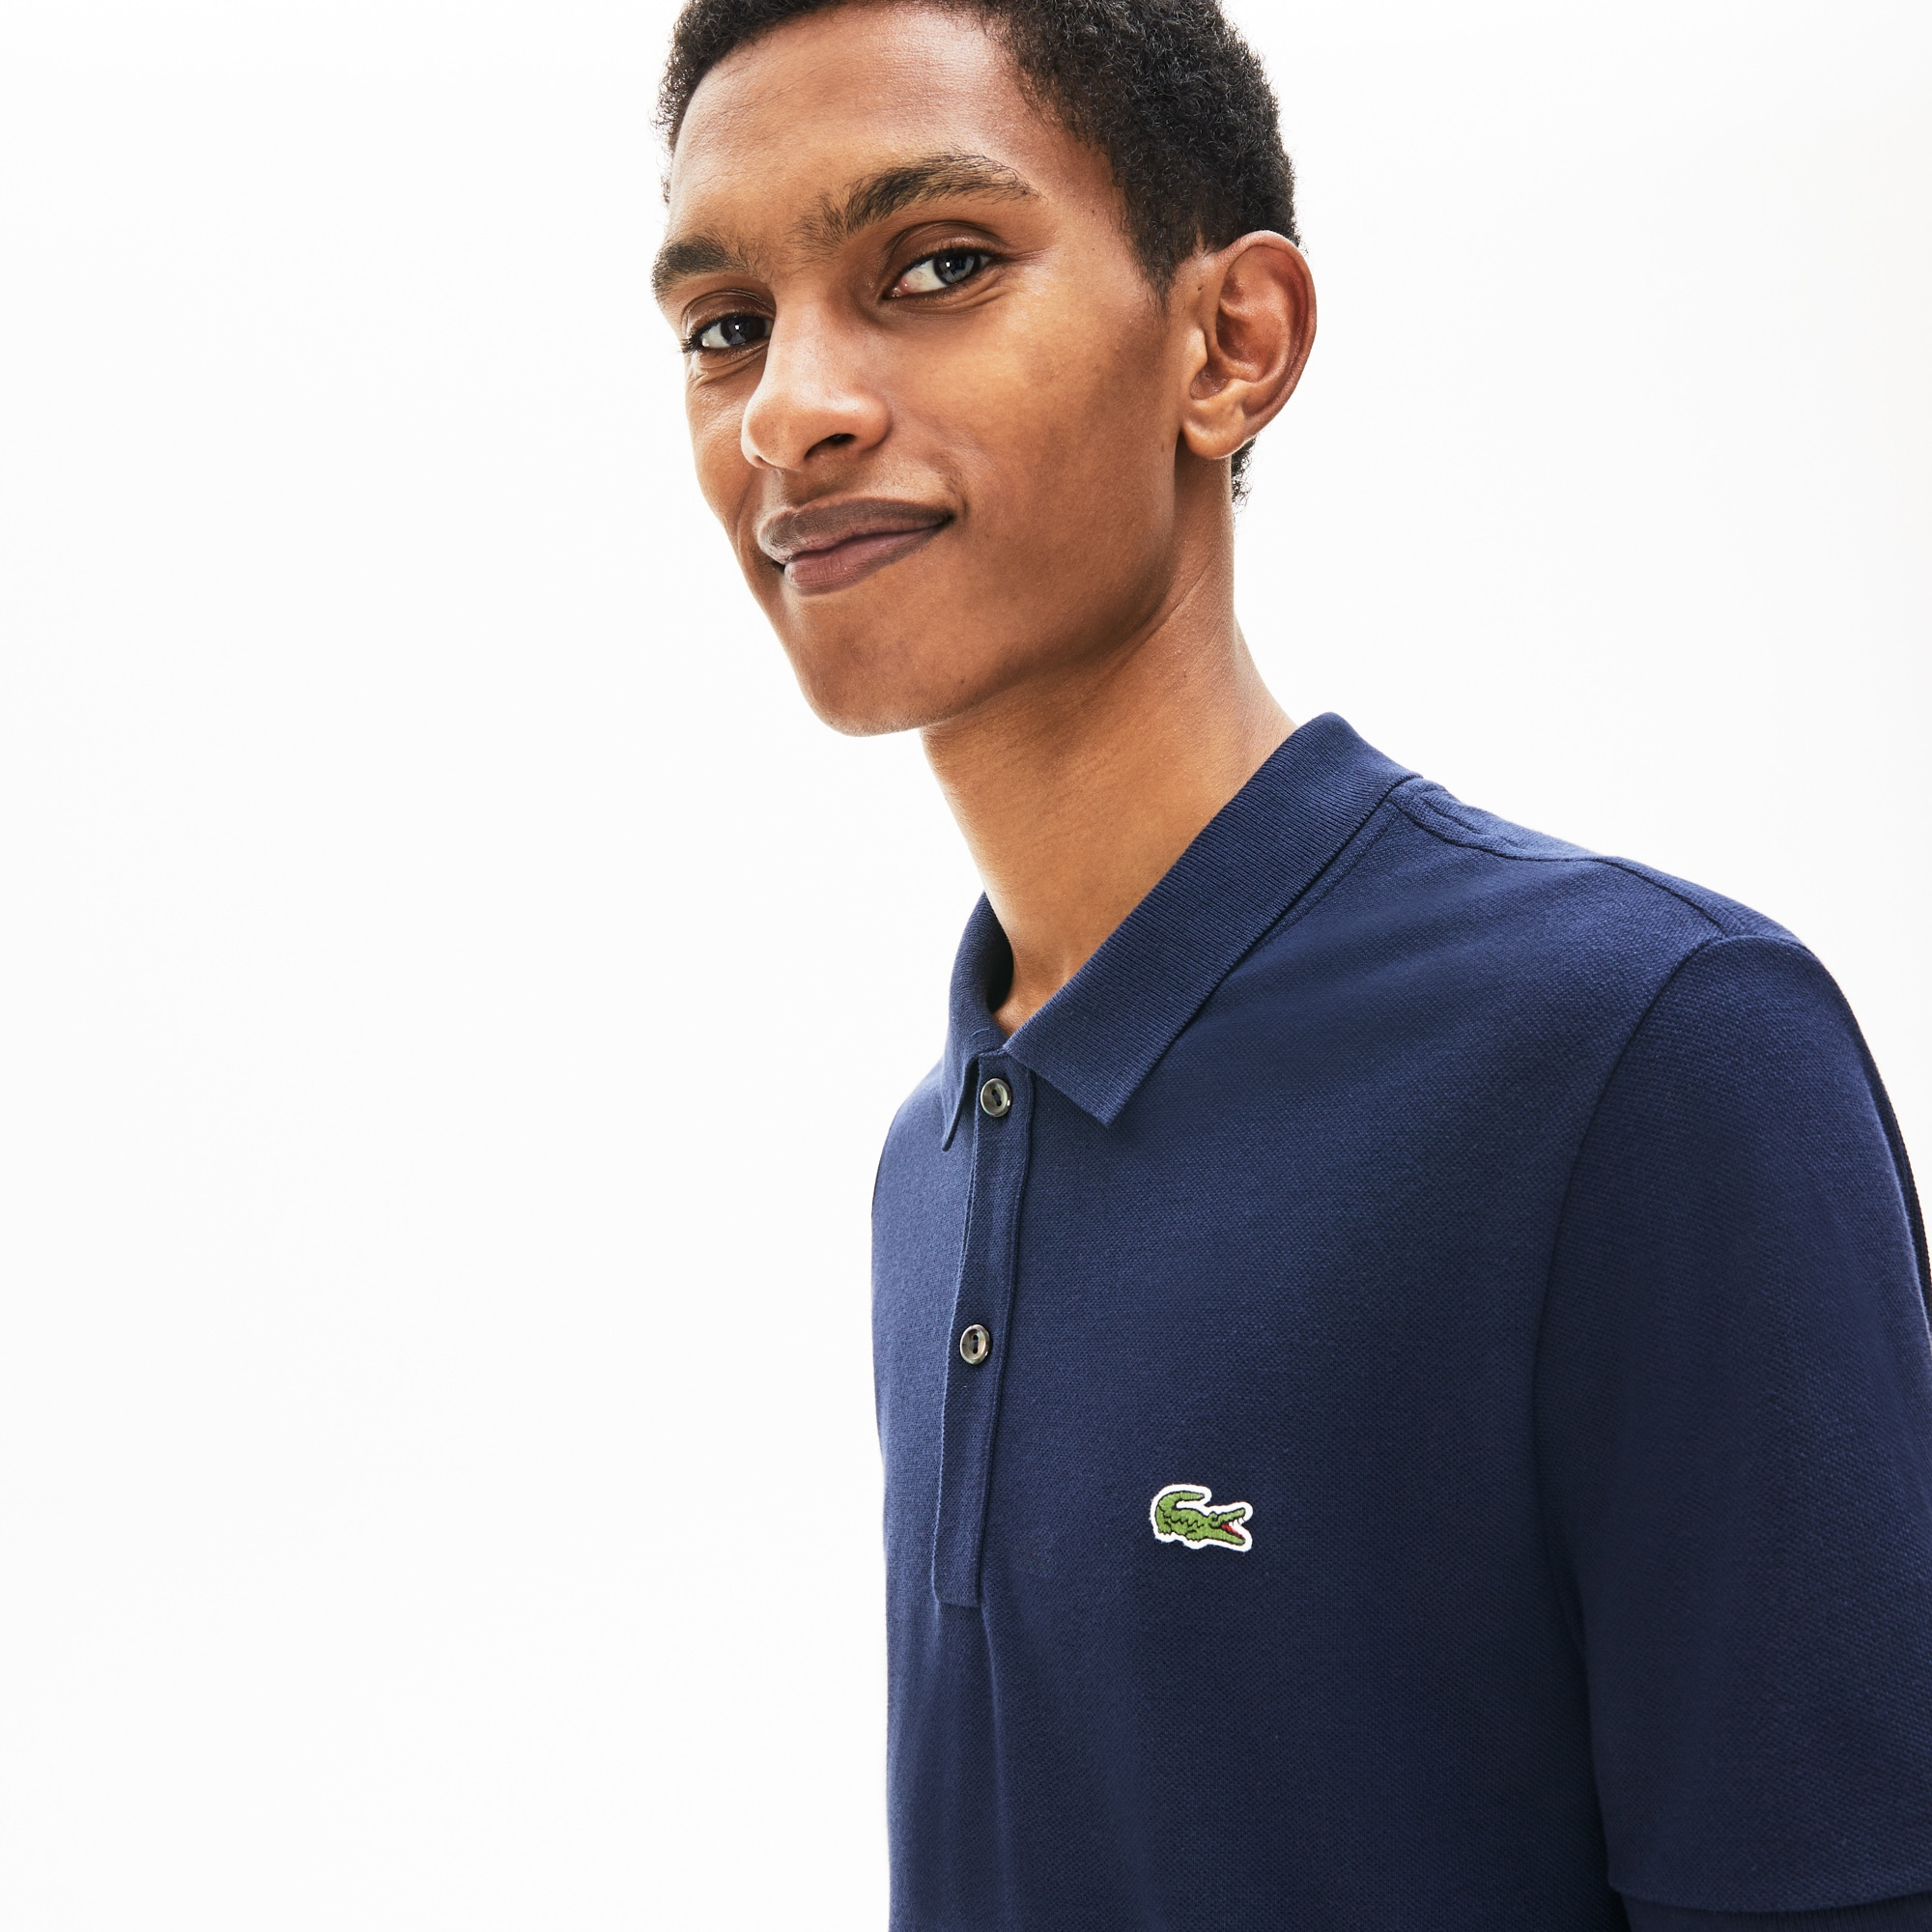 Lacoste Tops Men's Regular Fit Thermoregulating Piqué Polo Shirt